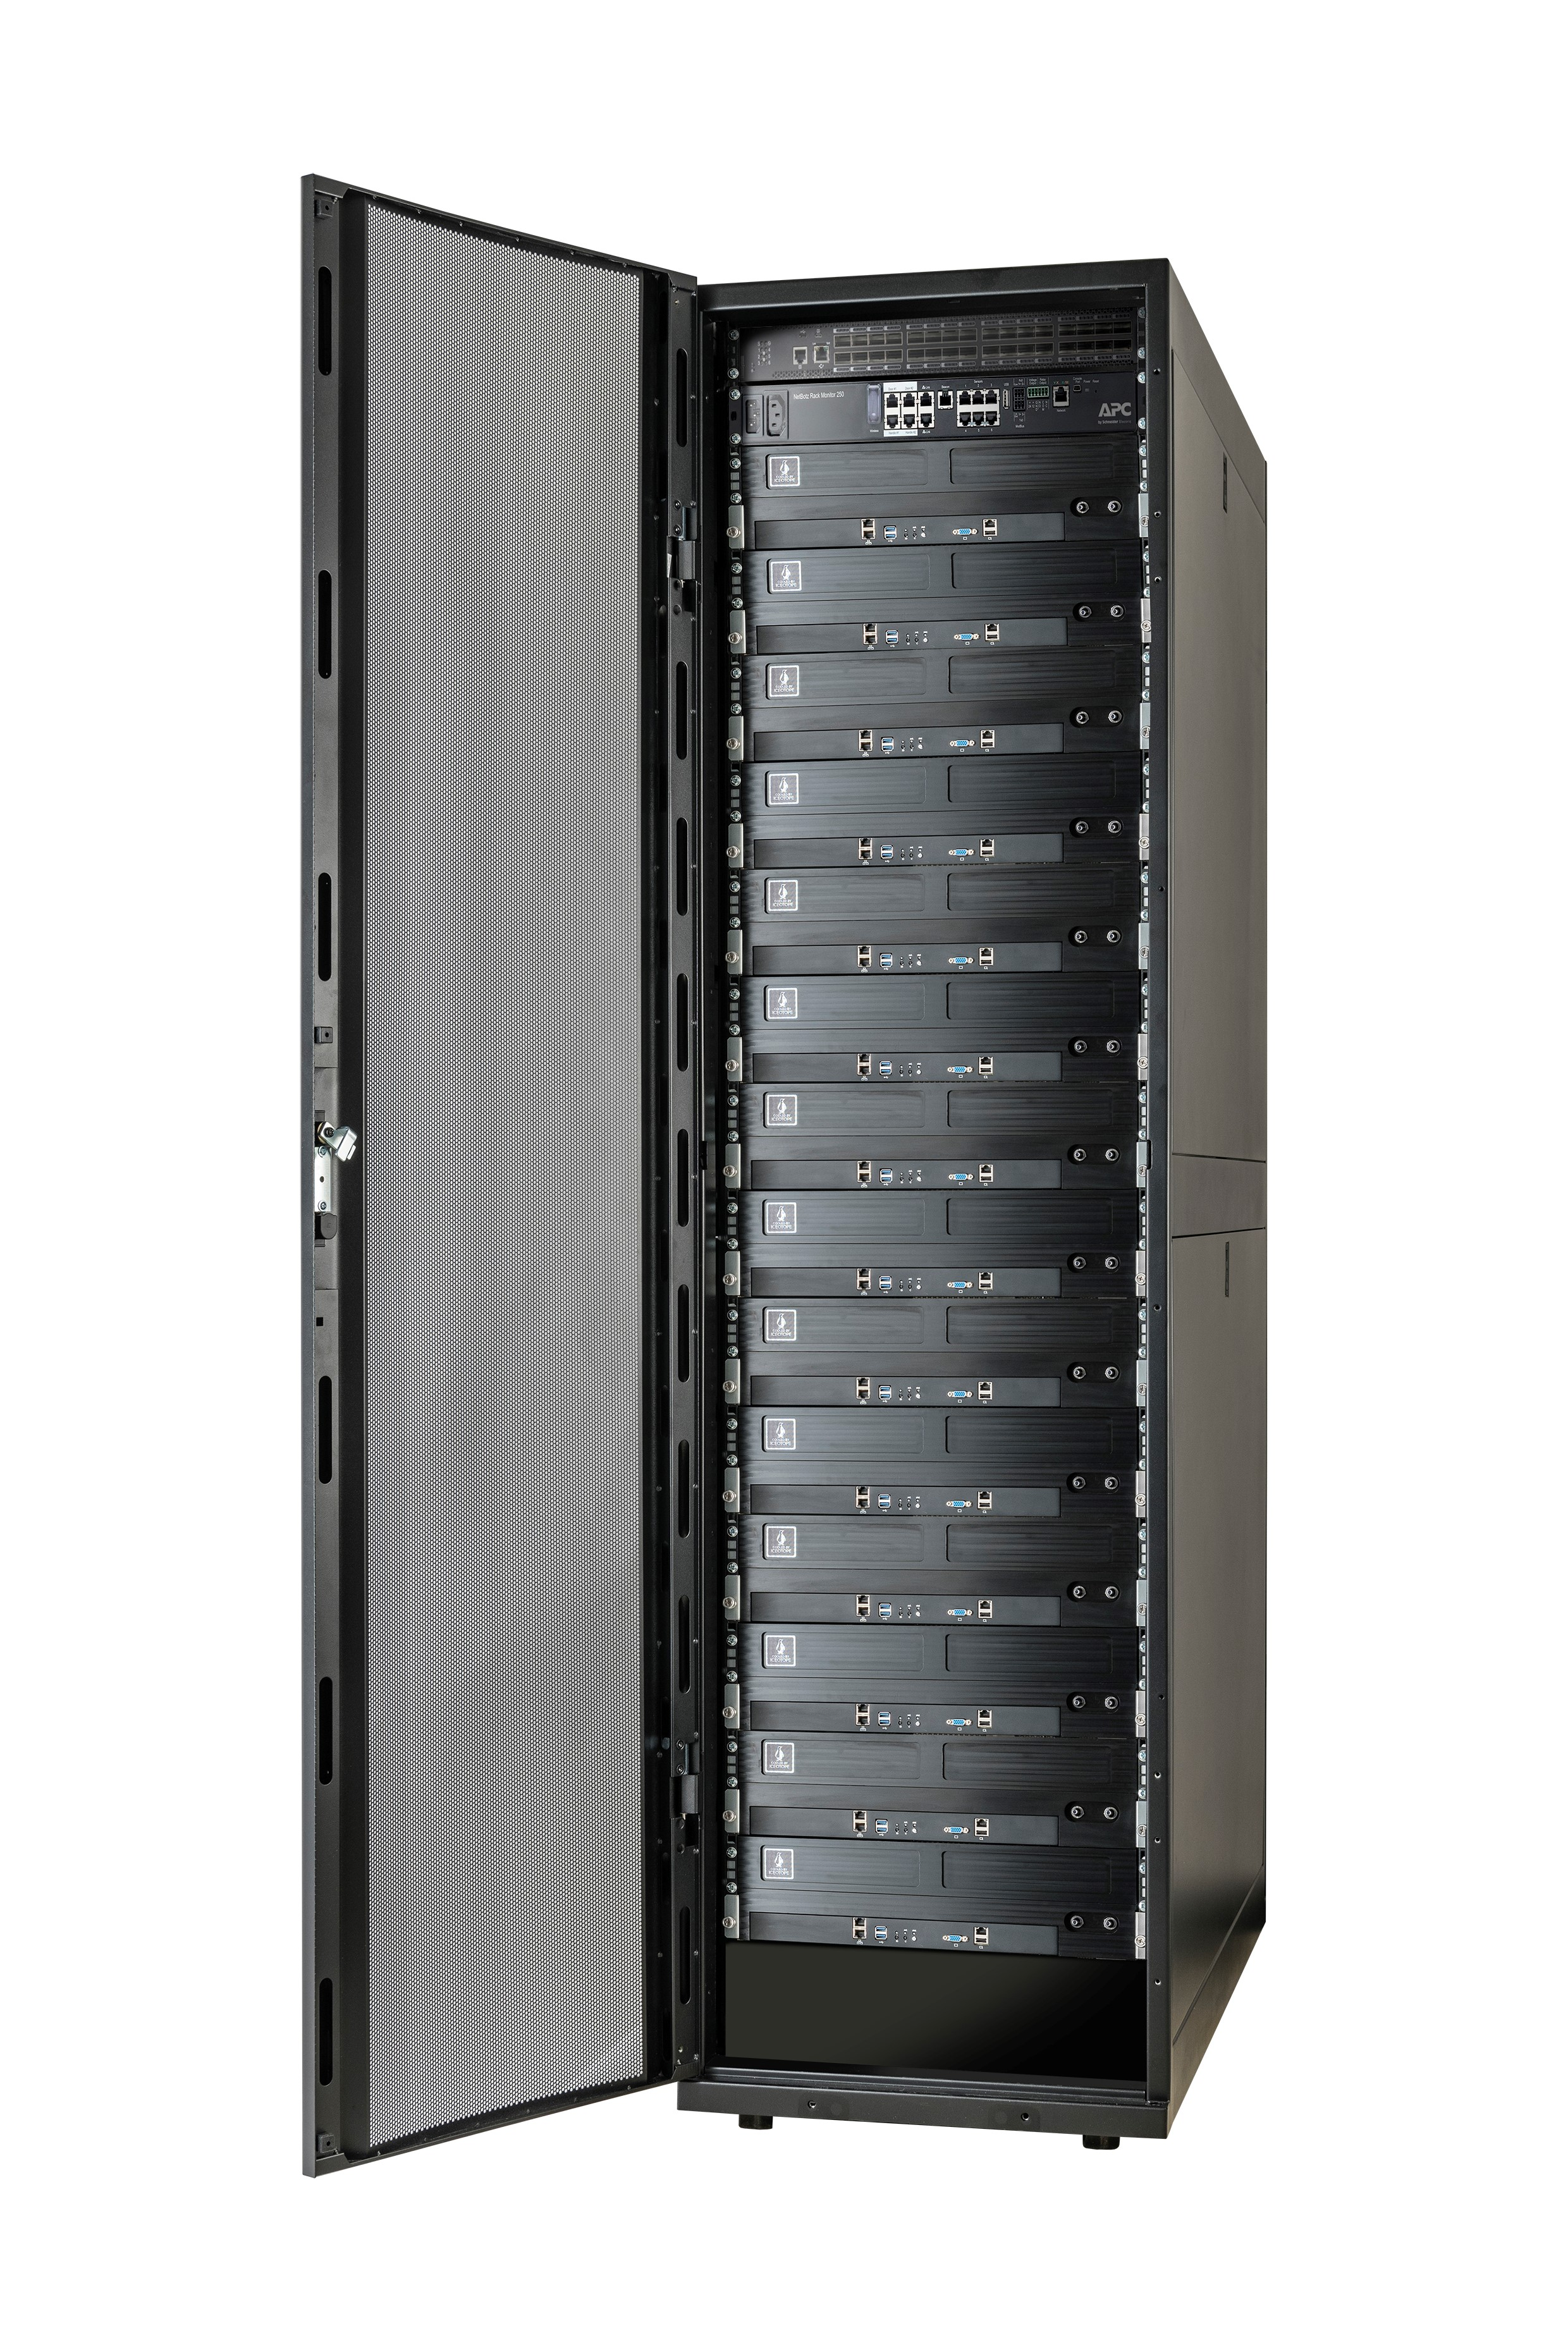 Schneider Electric Announces Industry's First Integrated Rack with Immersed, Liquid-Cooled IT for Data Centers